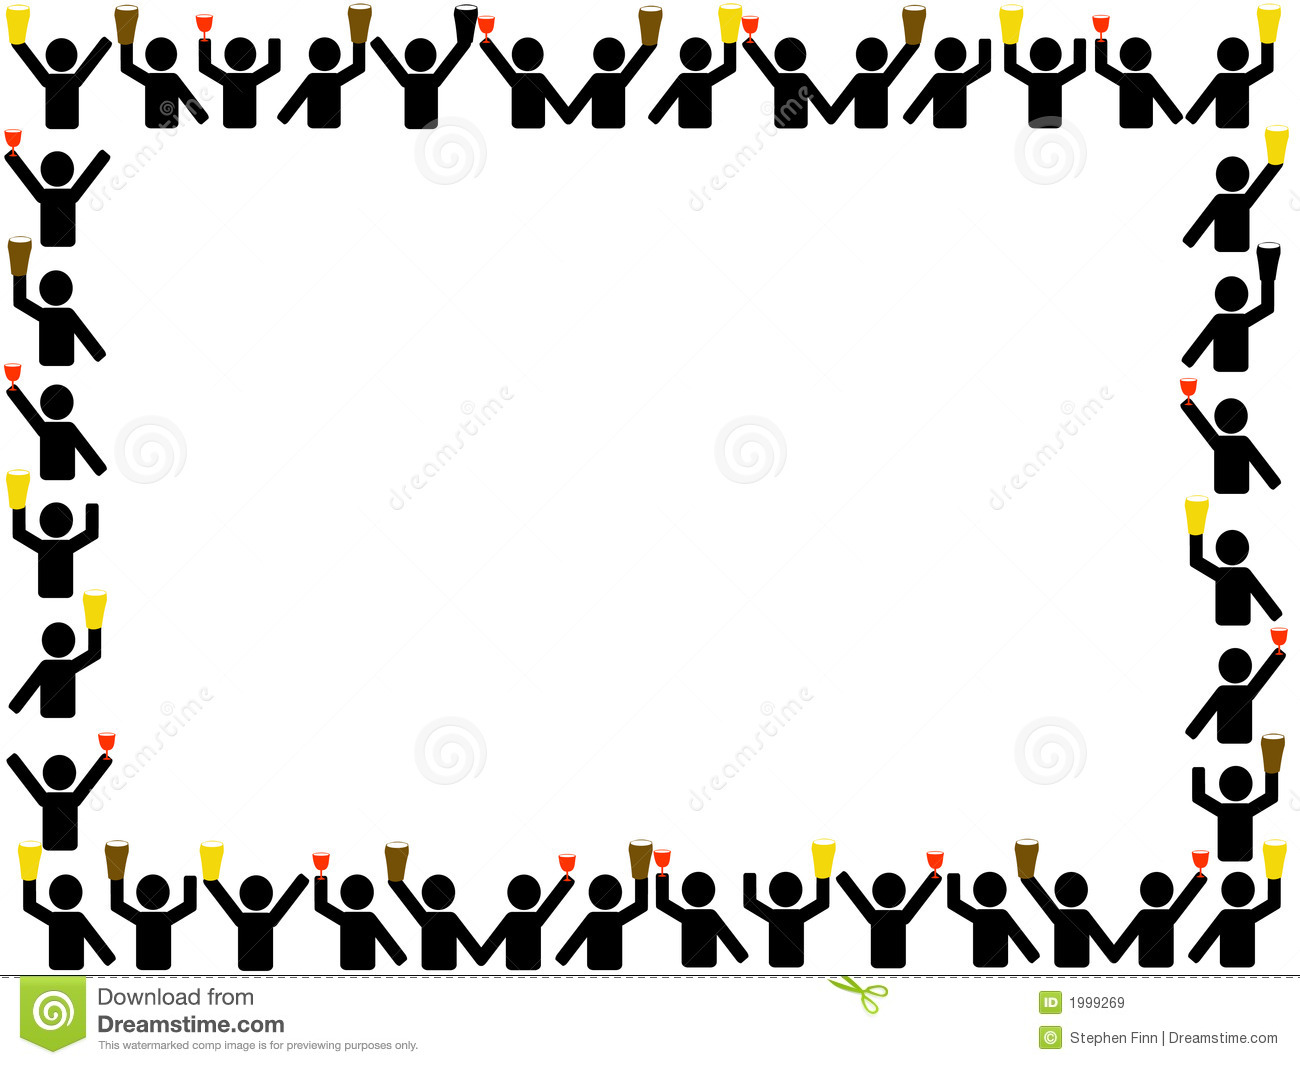 People Celebrating Holding Drinks Border Stock Vector